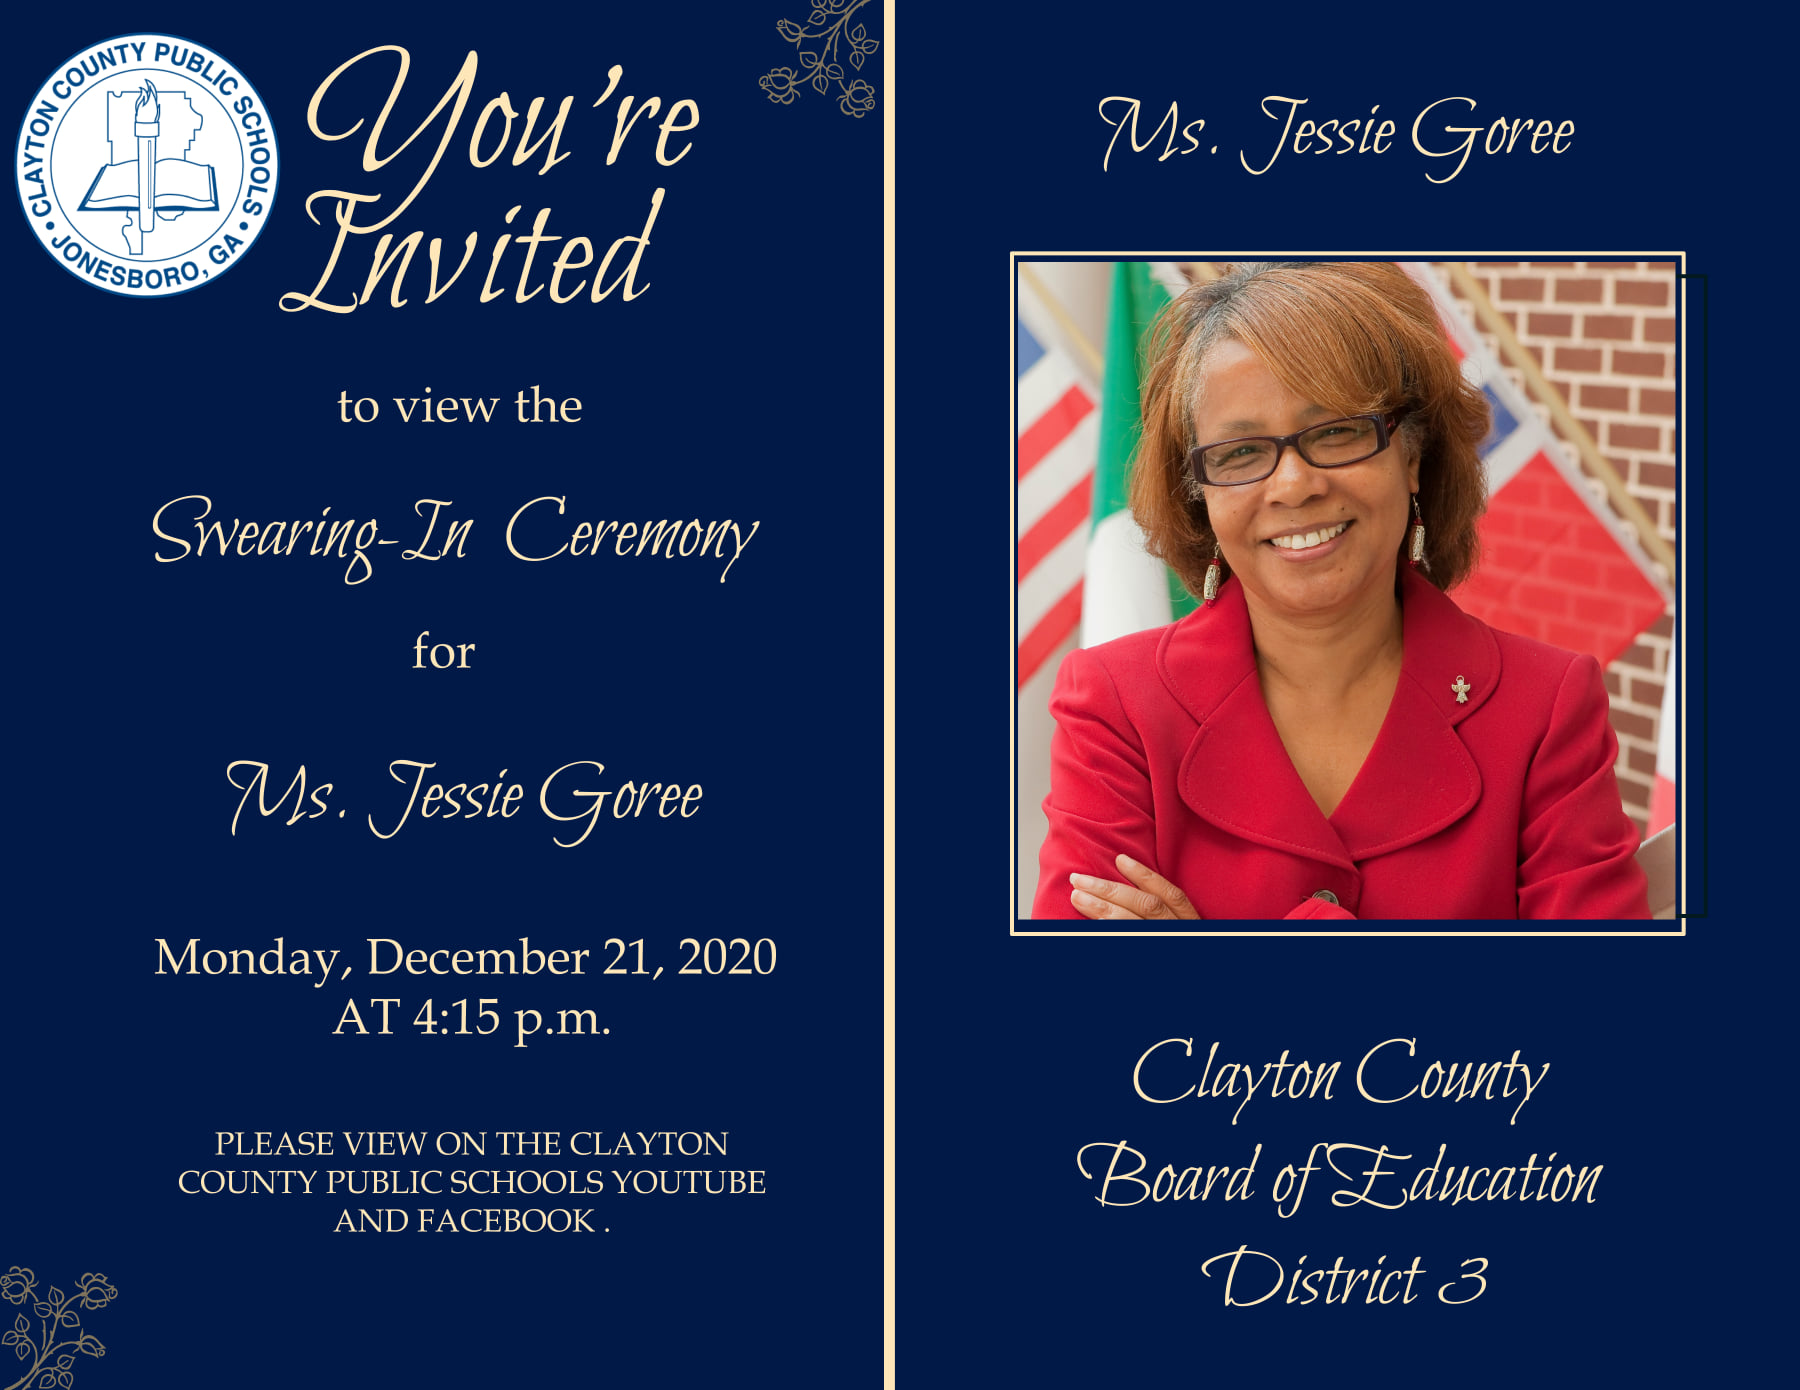 CCBOE Swearing-In Invitations